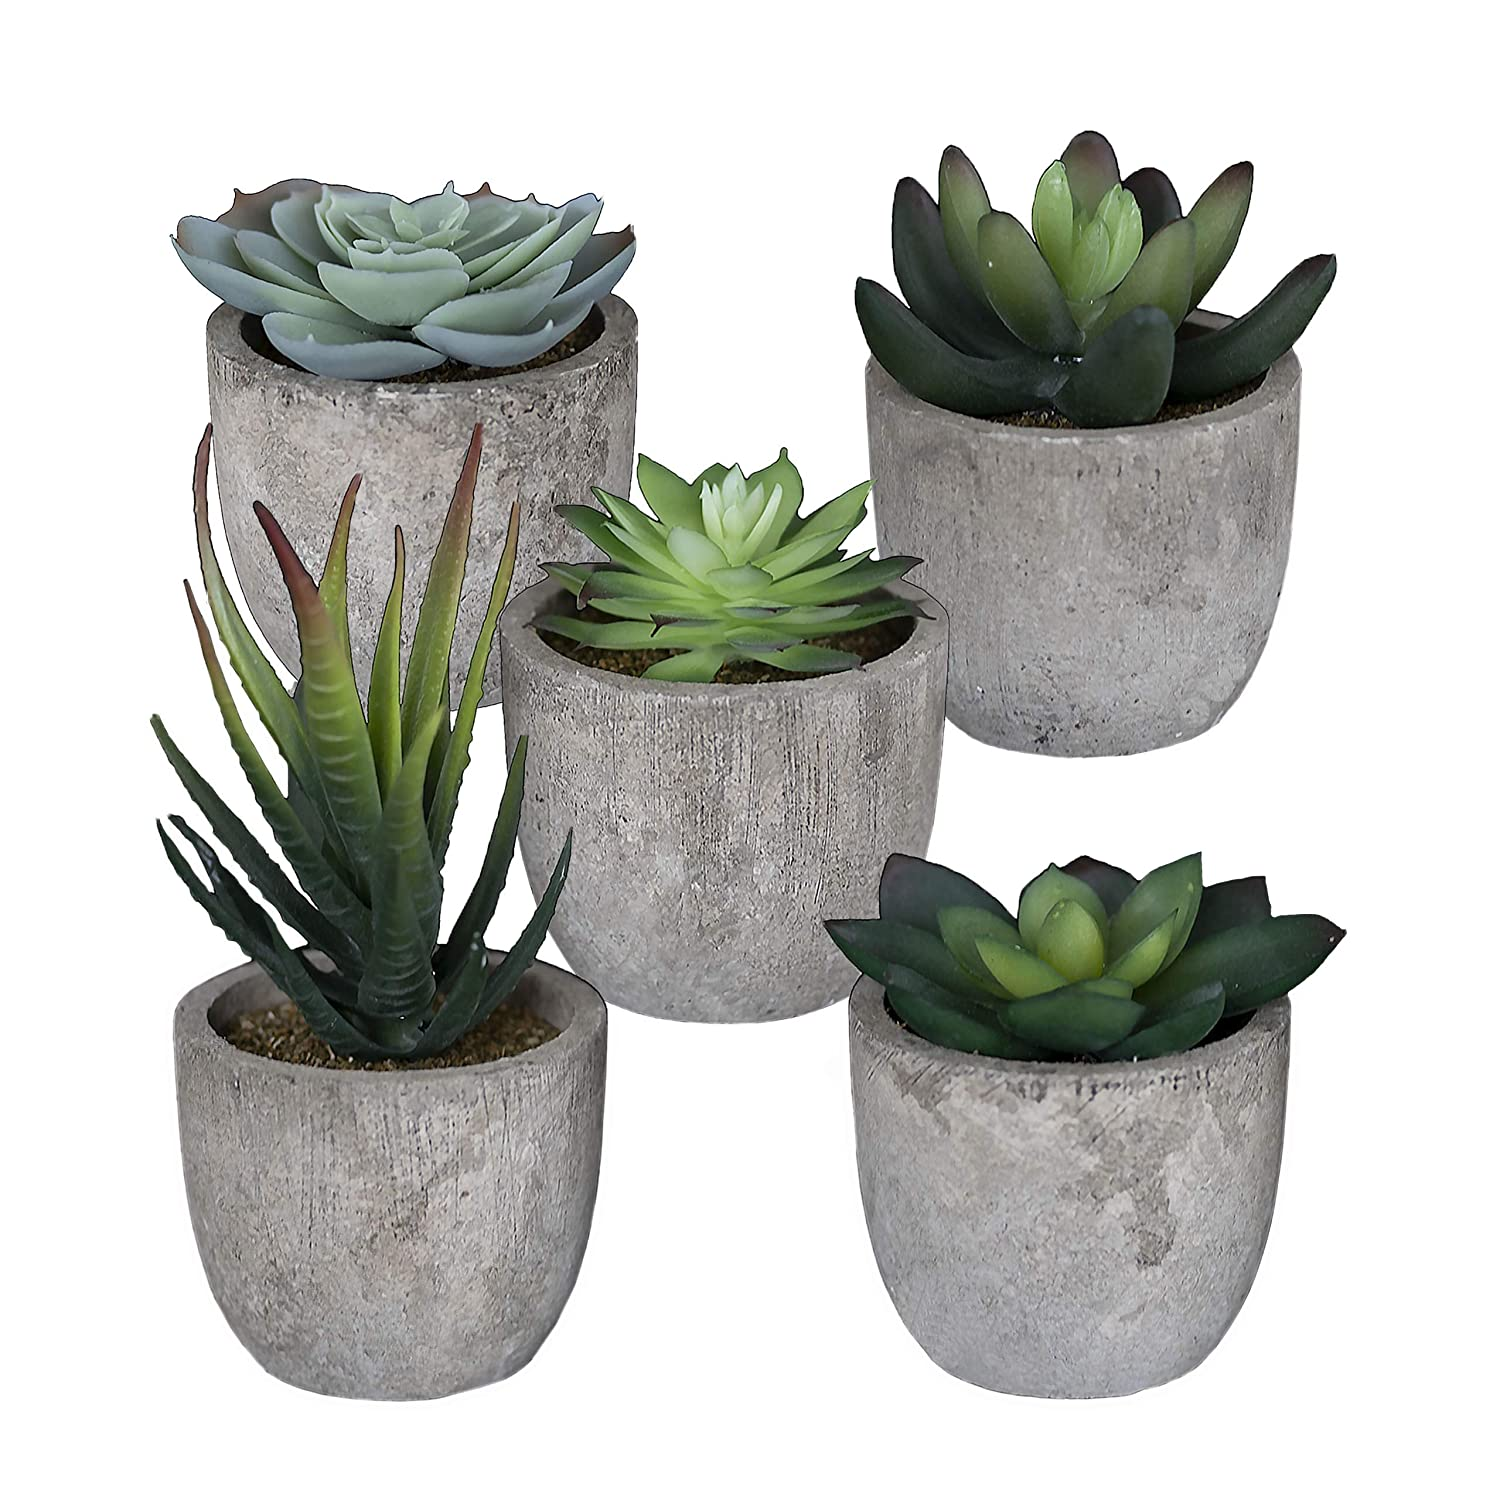 Sophia's Garden Set of 5 Artificial Succulent Plants with Pots – Realistic Greenery Mini Potted Faux Plant Arrangements | for Home Office Decor, Dorm Room, Bathroom, Kitchen Table Centerpieces